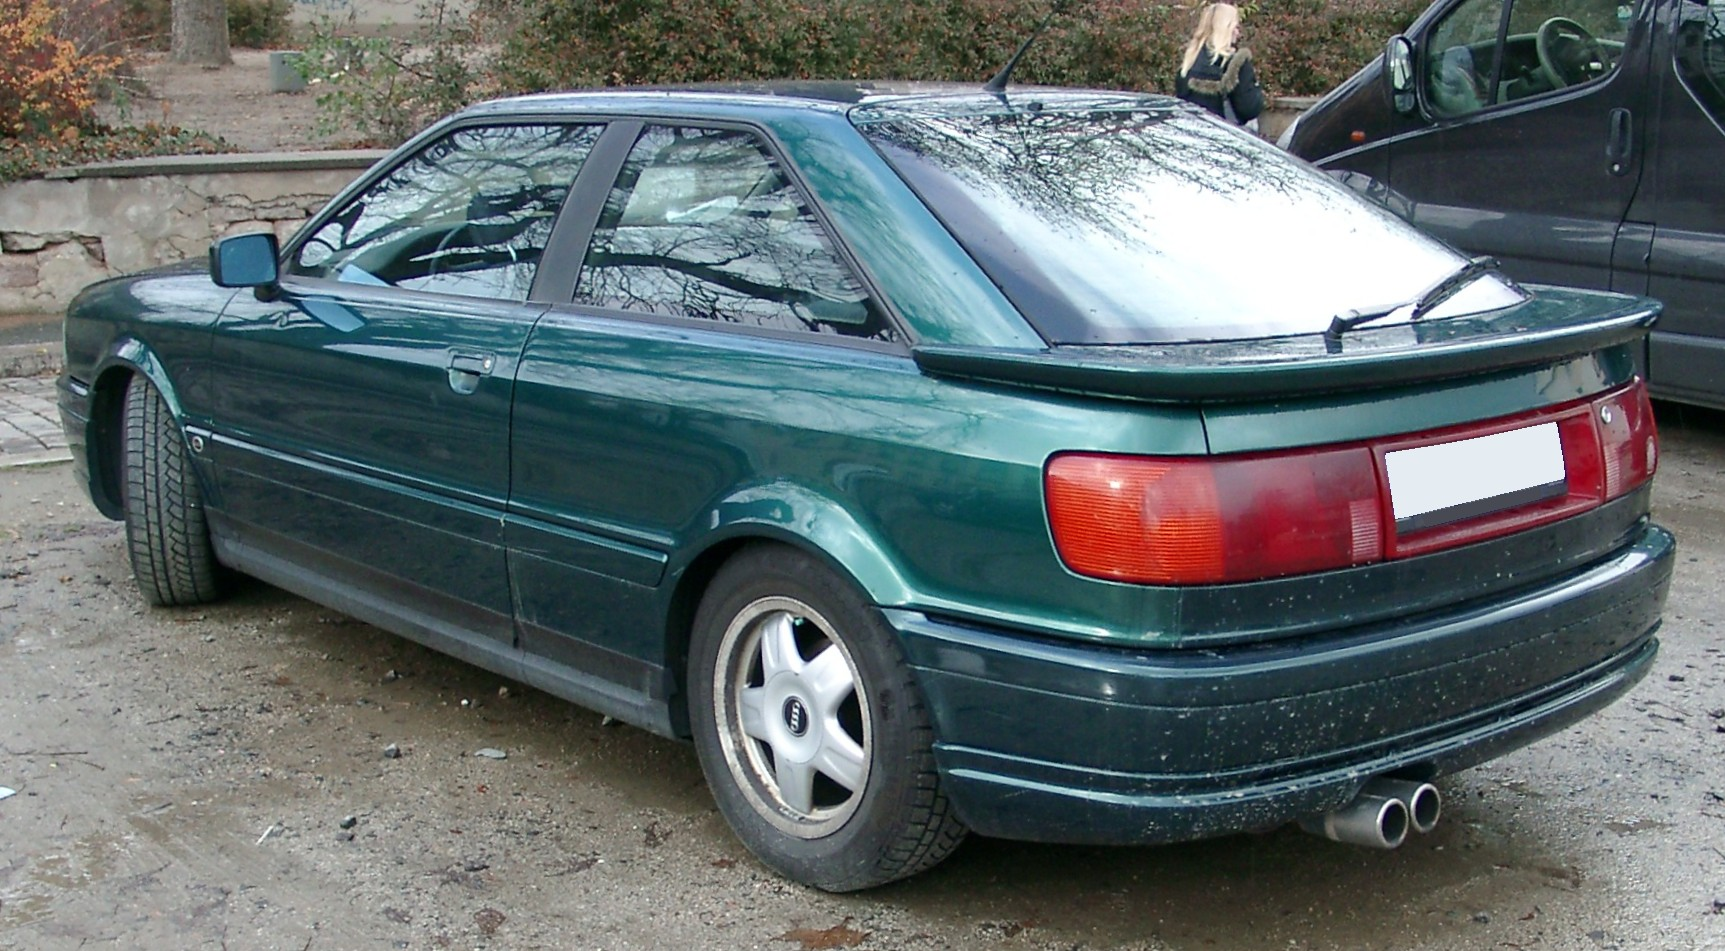 File:Audi Coupe rear 20071126.jpg - Wikimedia Commons